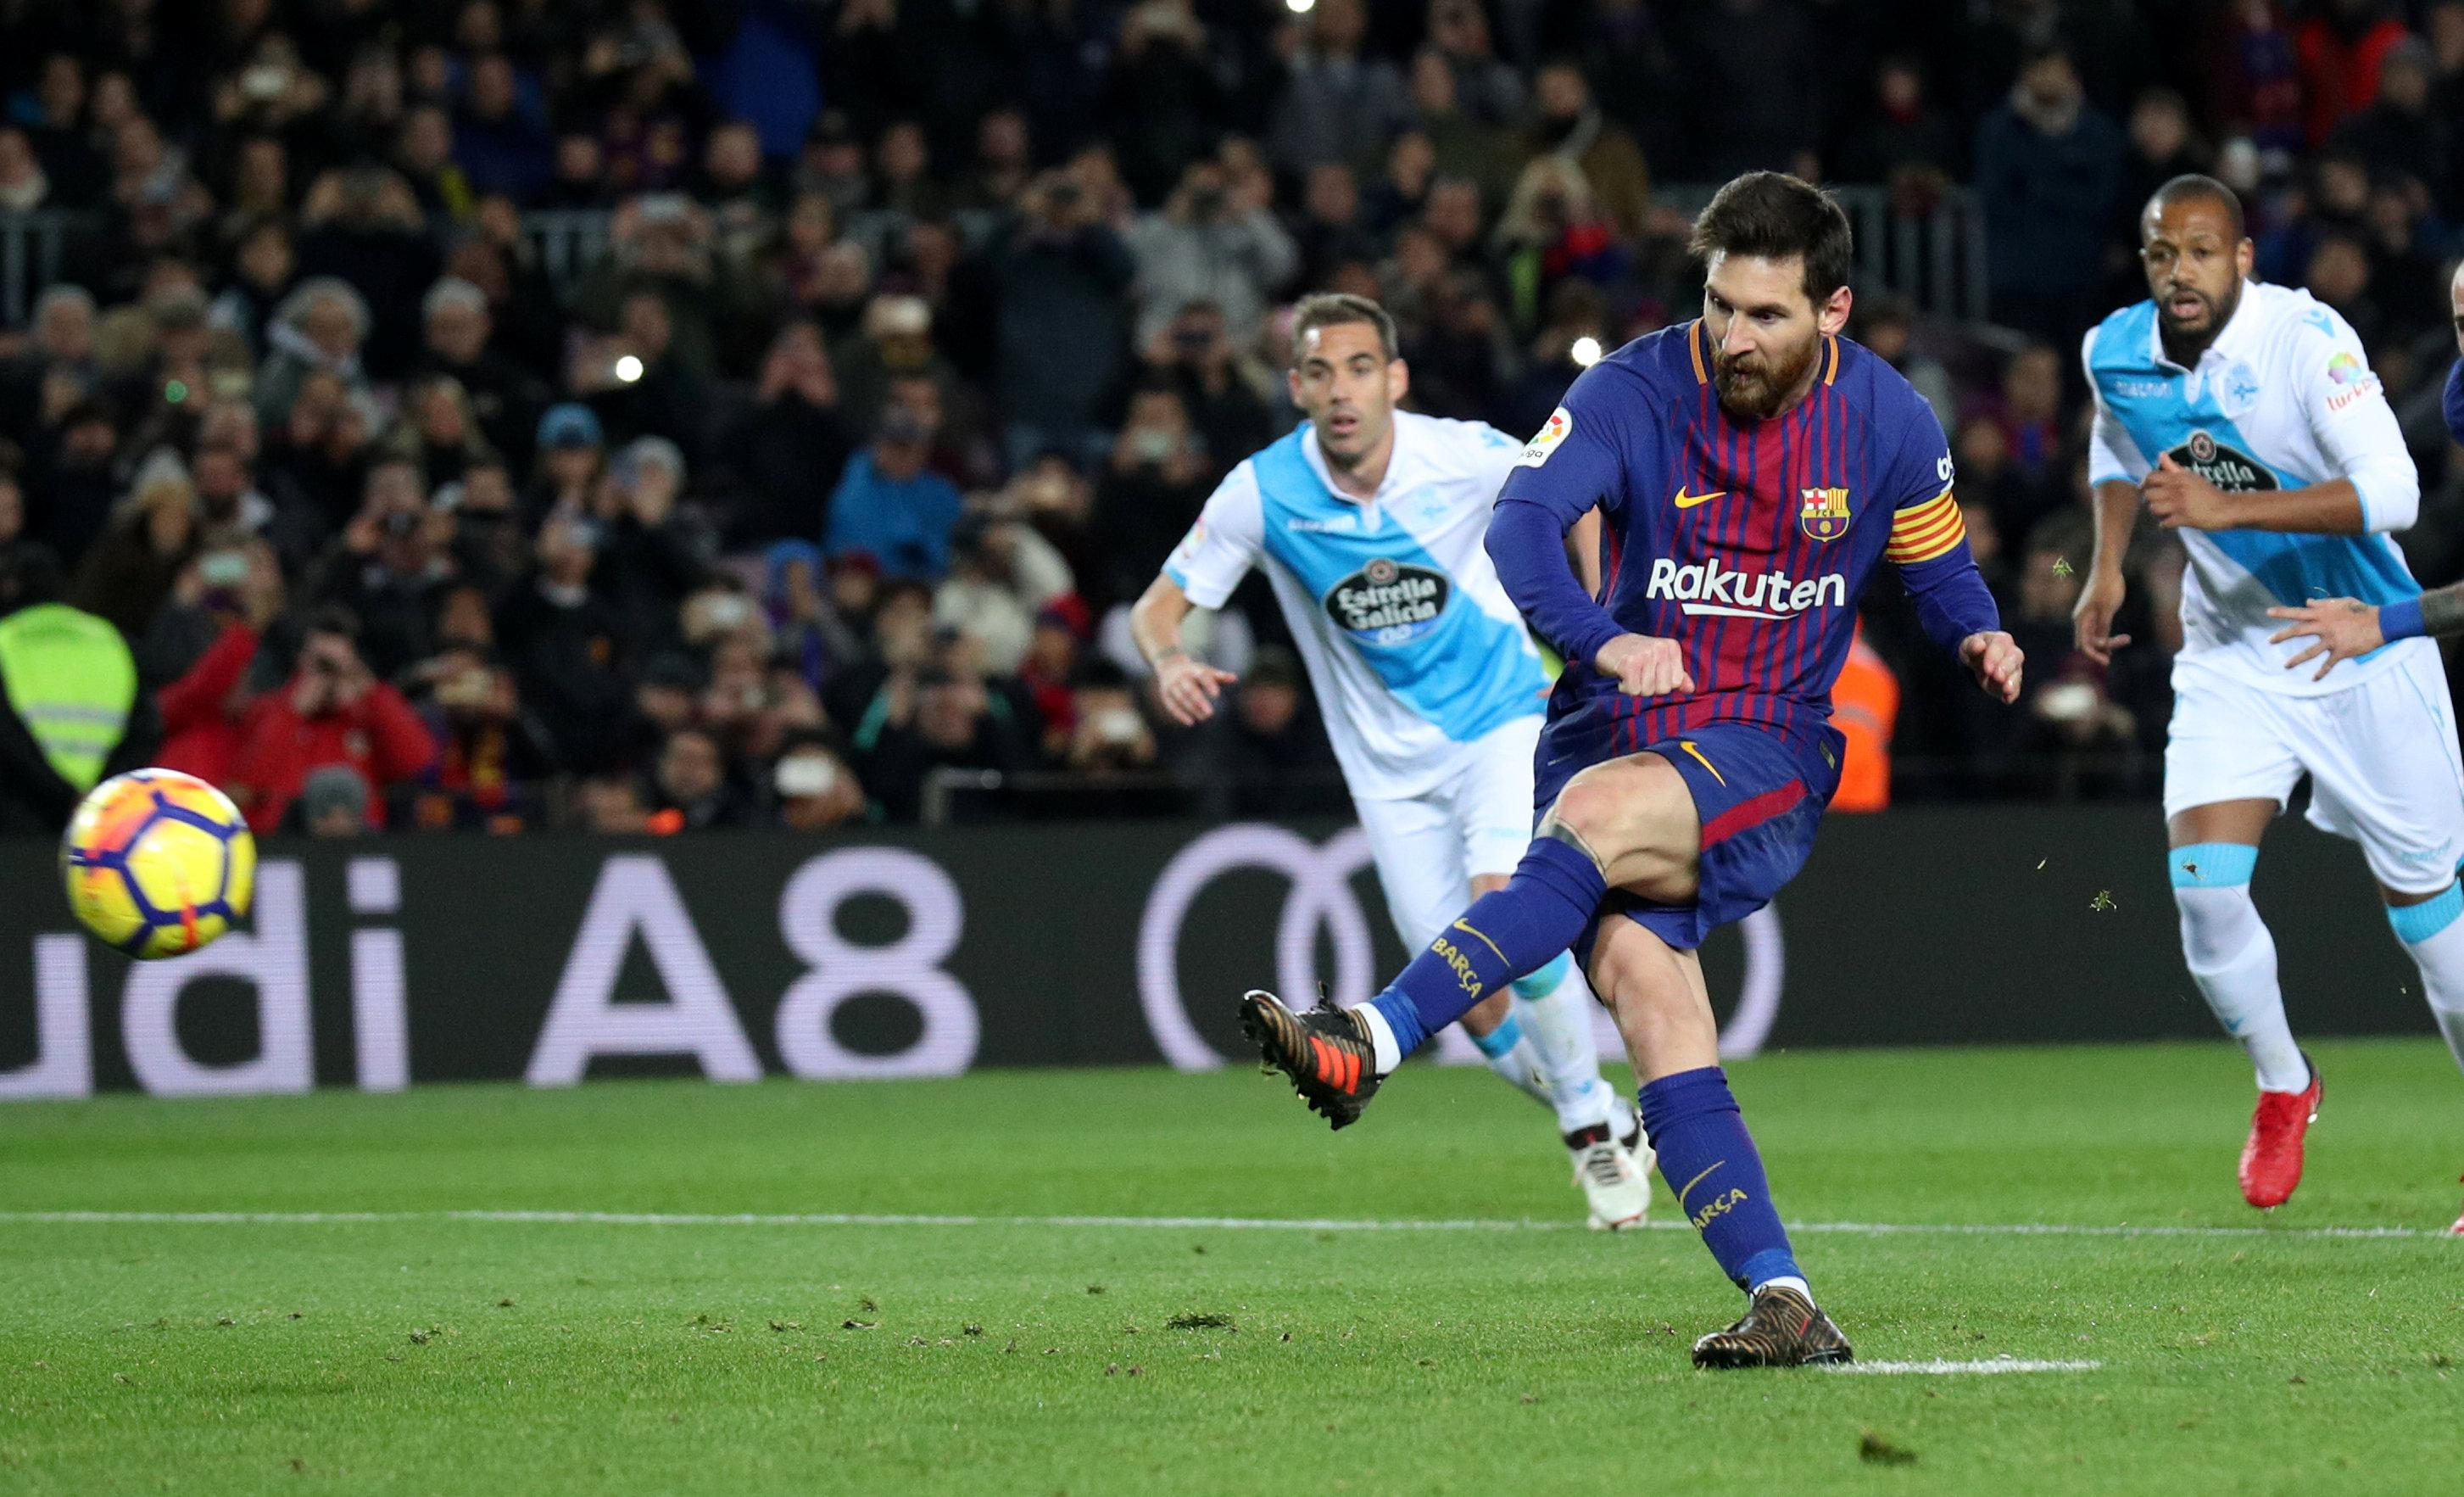 Messi missed his last attempted penalty against Deportivo in December